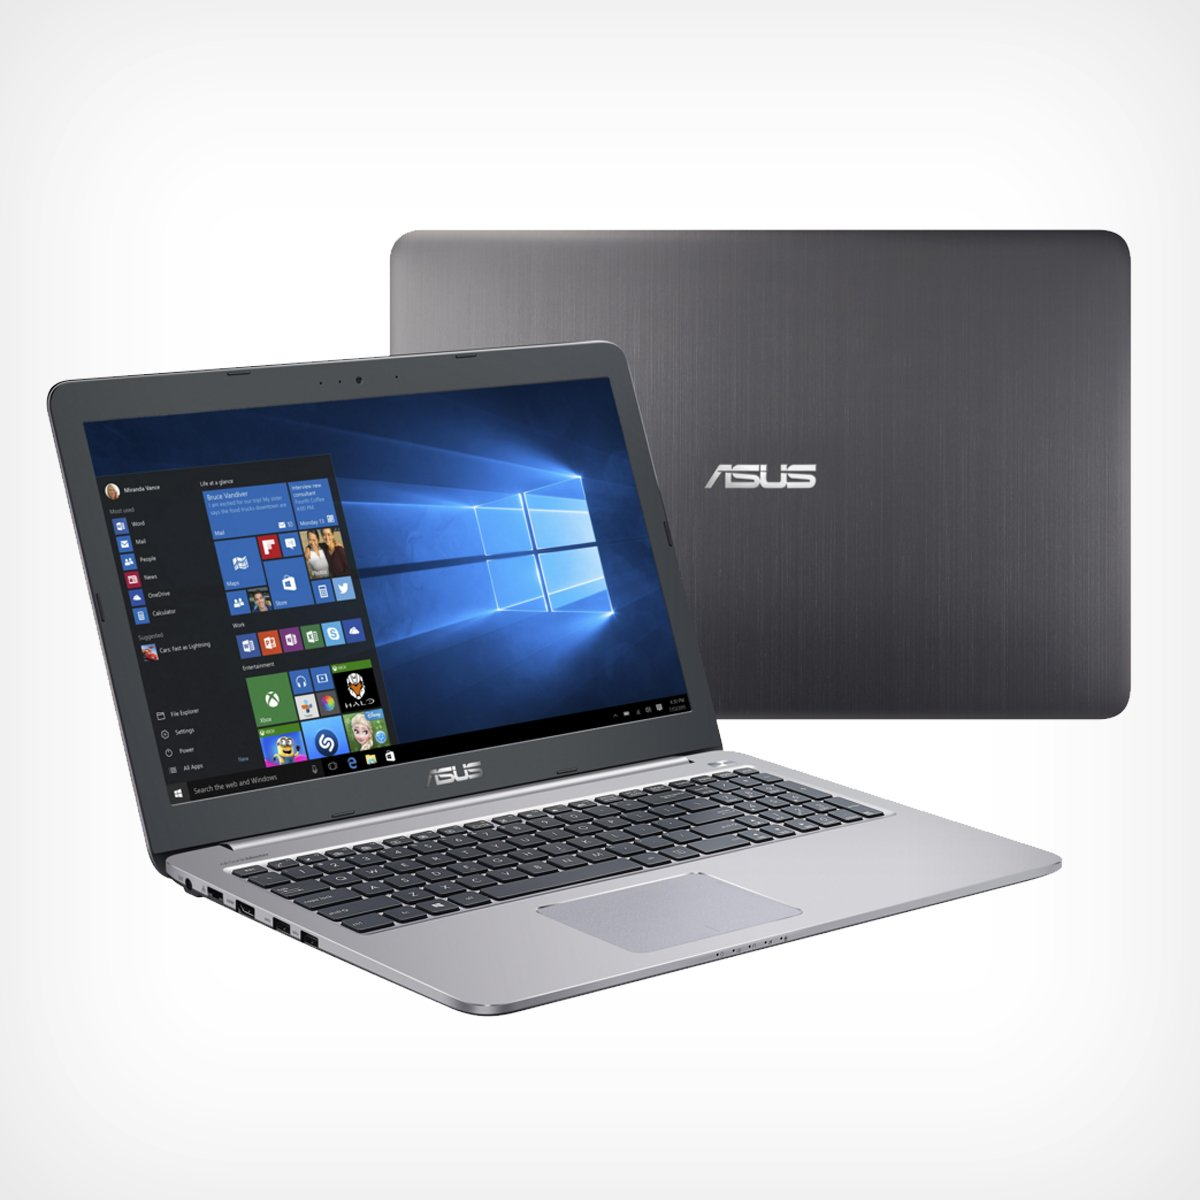 ASUS K501UX Smart Gesture Windows 7